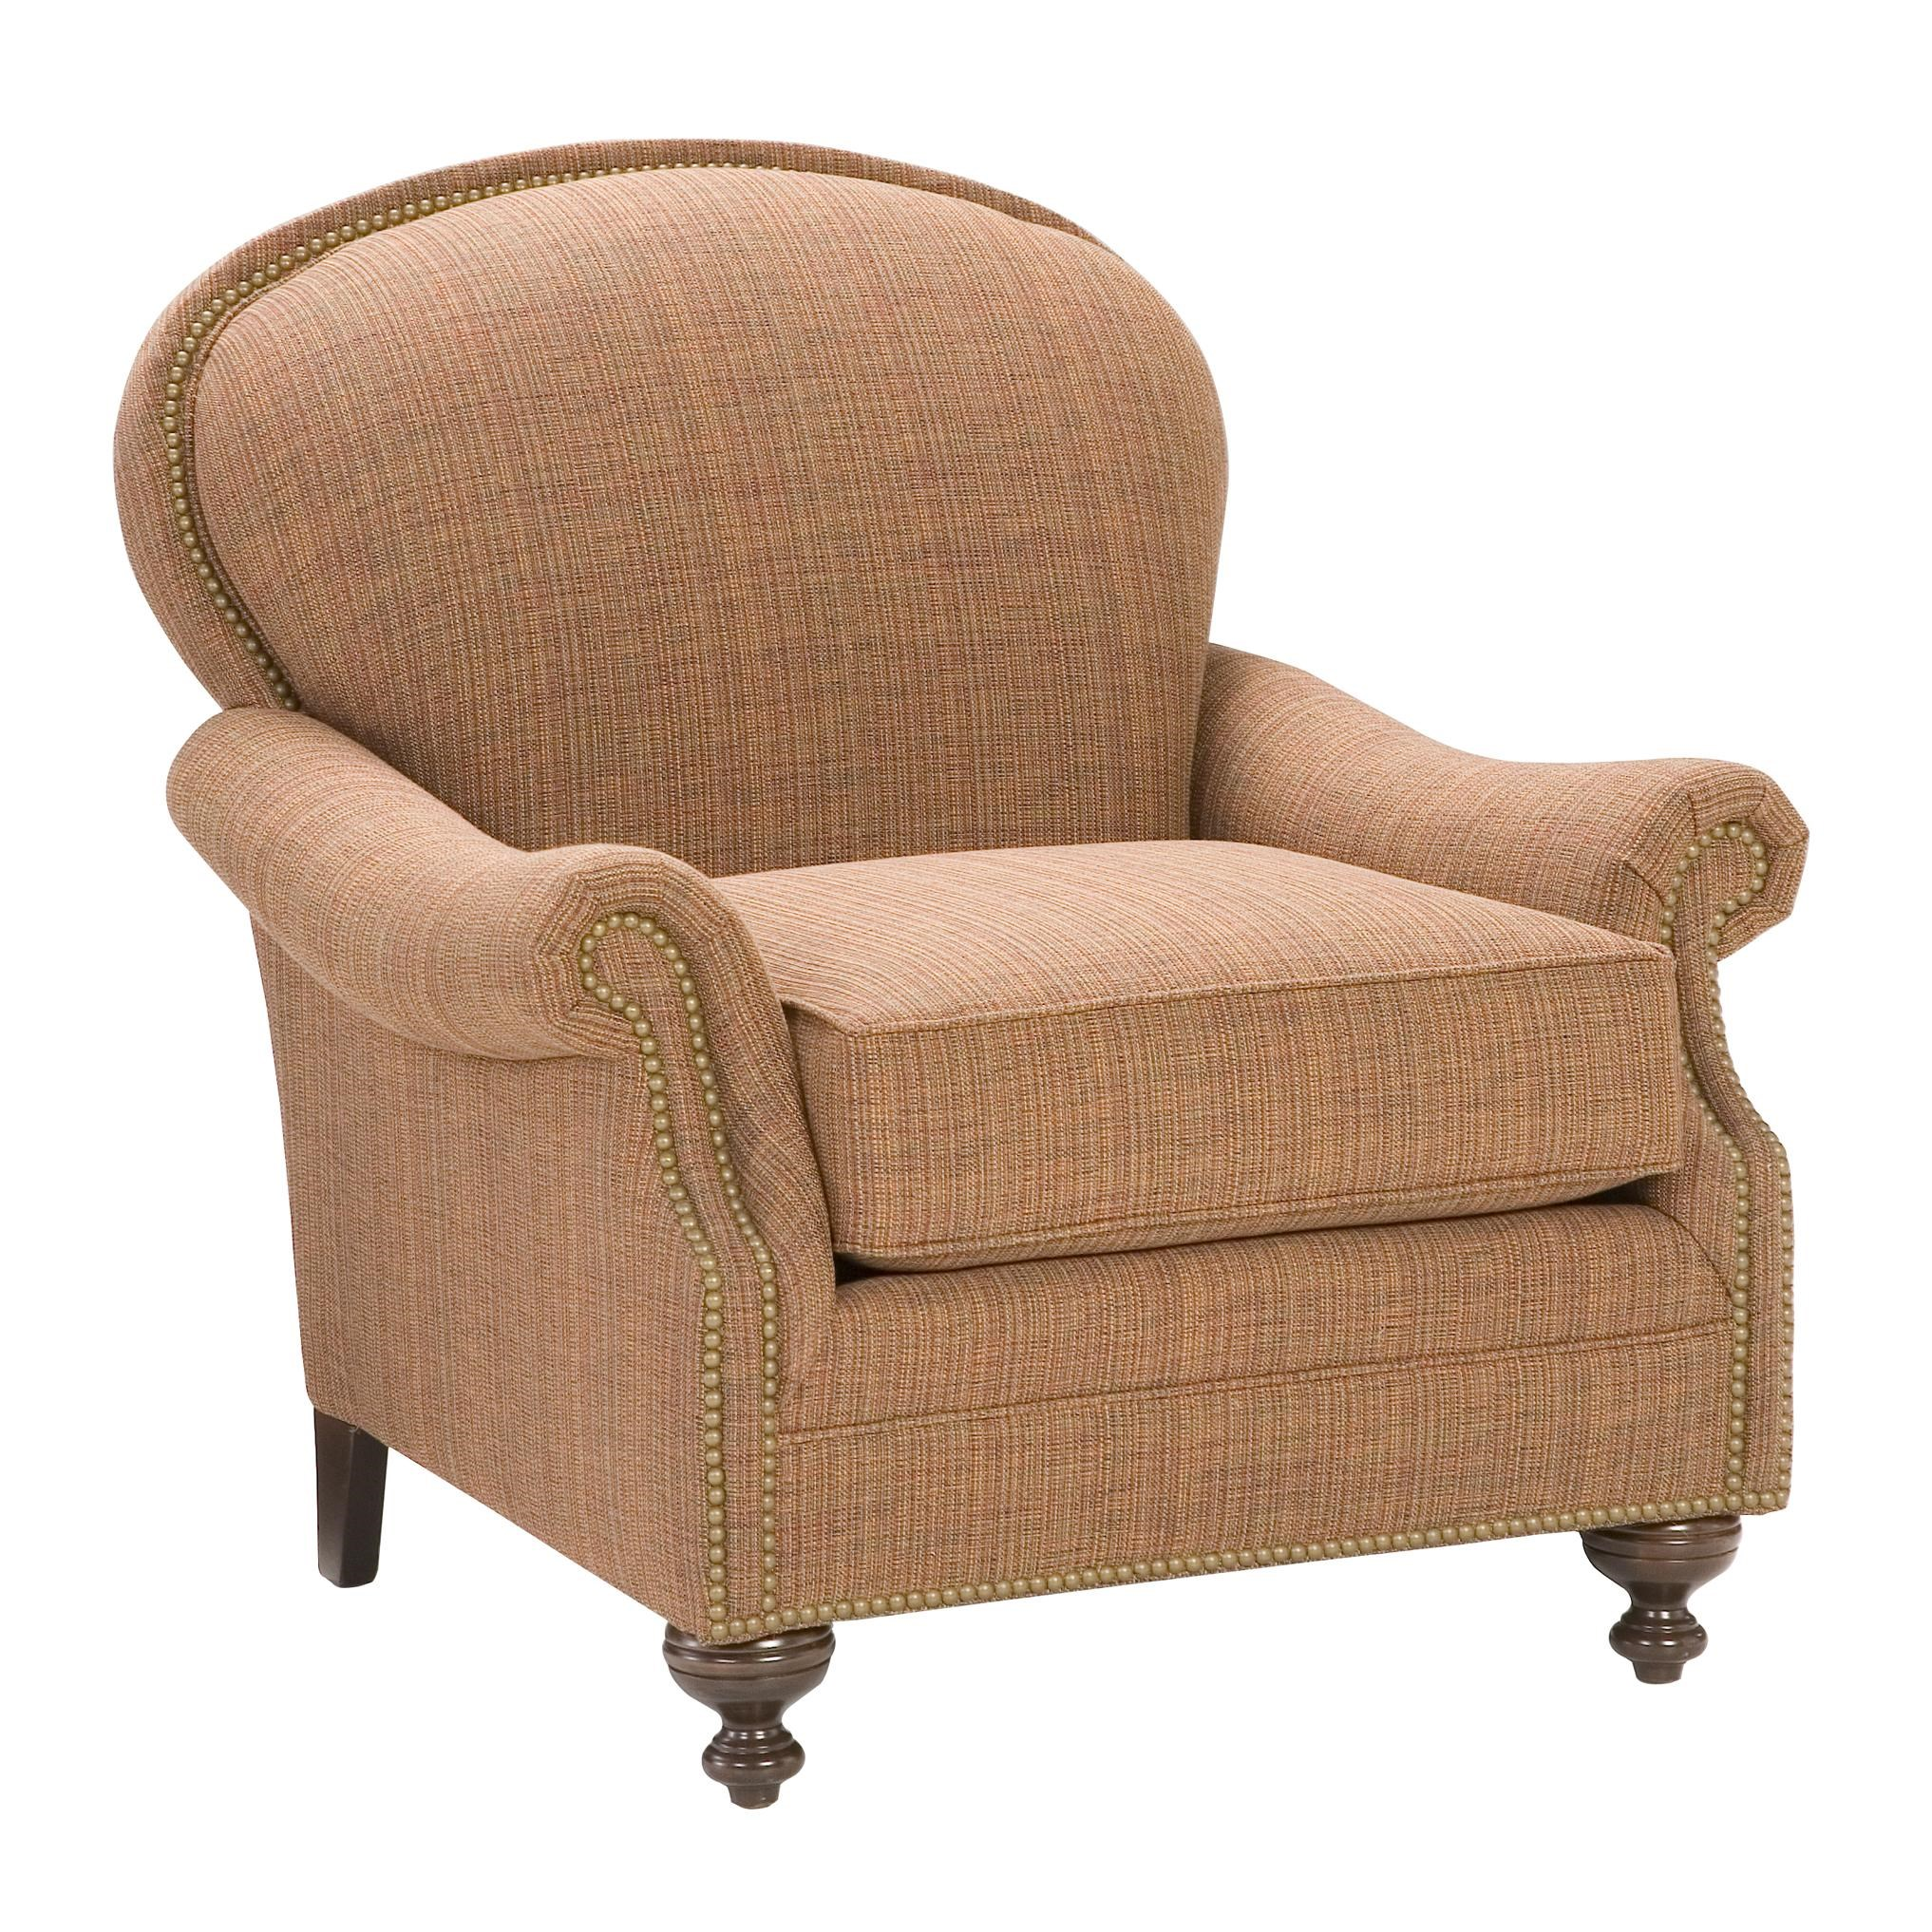 King Hickory King Hickory Accent Chairs And Ottomans Pinehurst Accent Chair  With Nailhead Trim